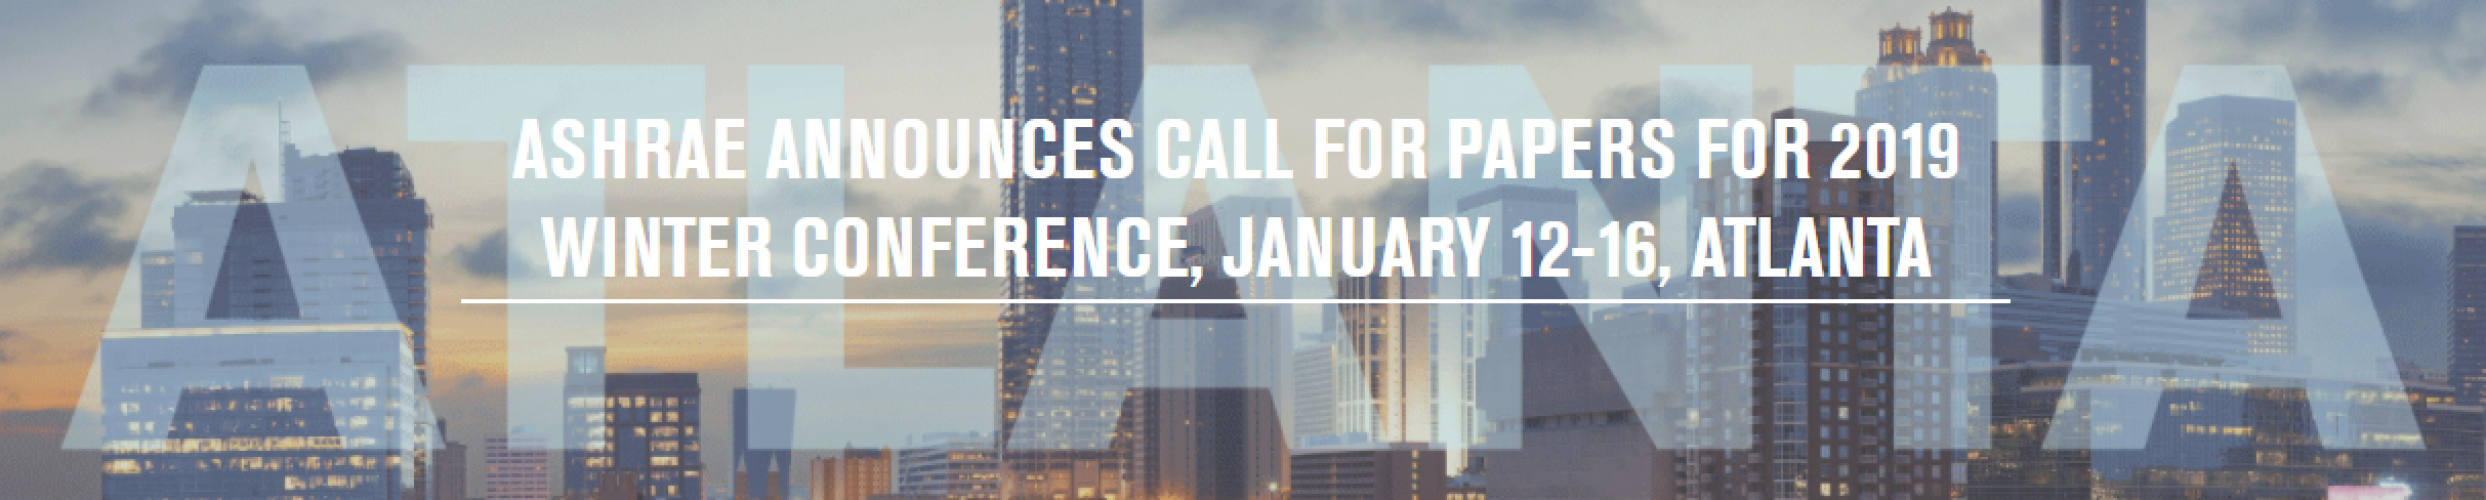 ASHRAE Announces Call for Papers for 2019 Winter Conference, January 12-16, Atlanta